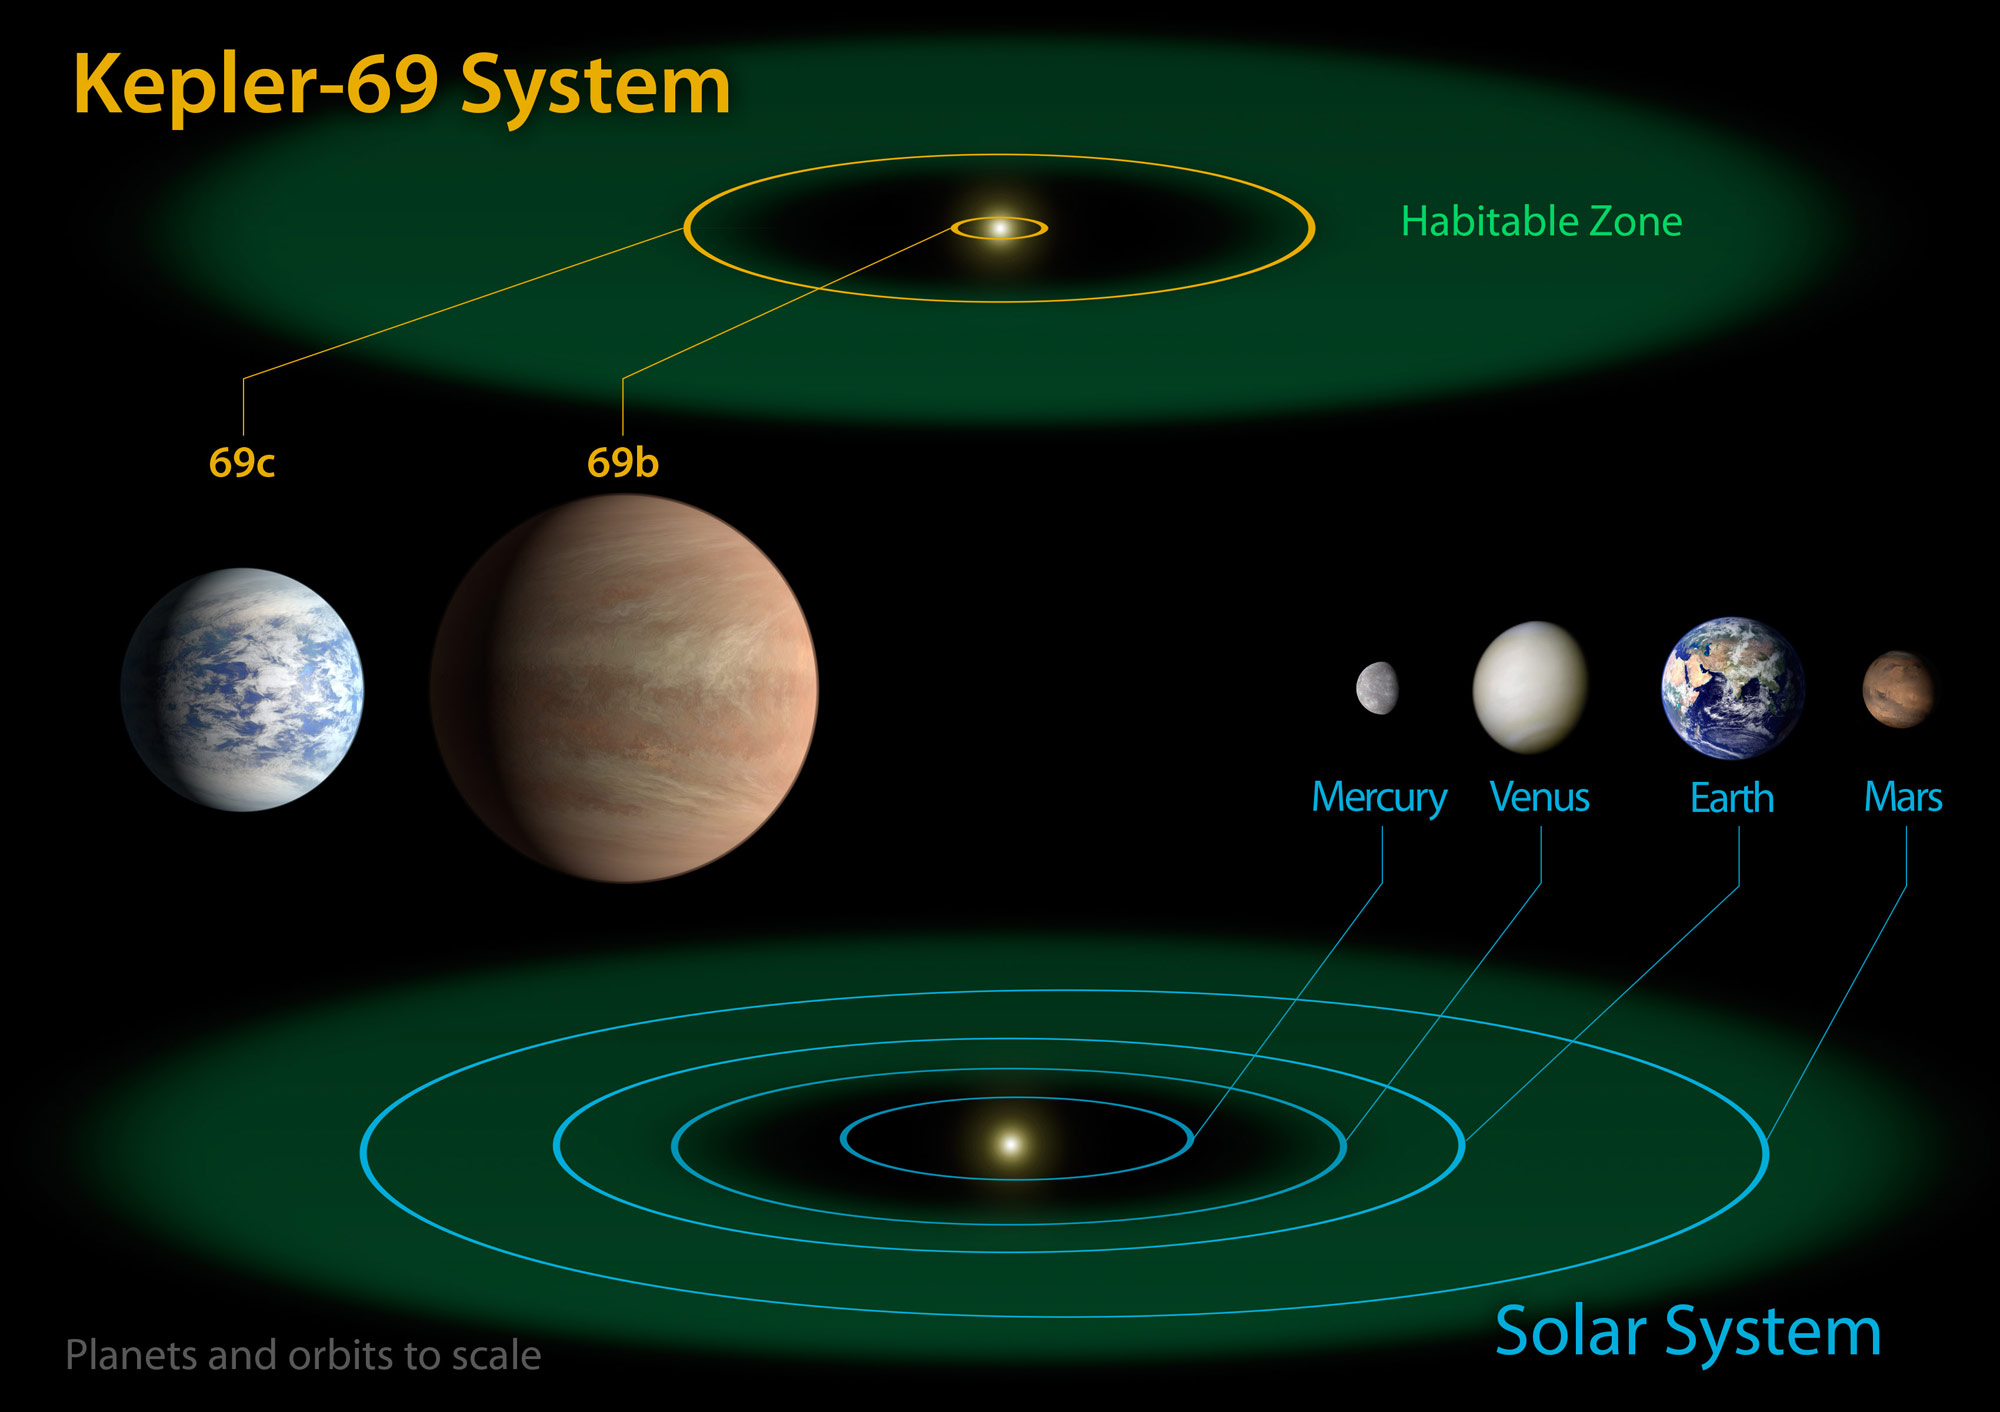 hight resolution of planets of kepler 69